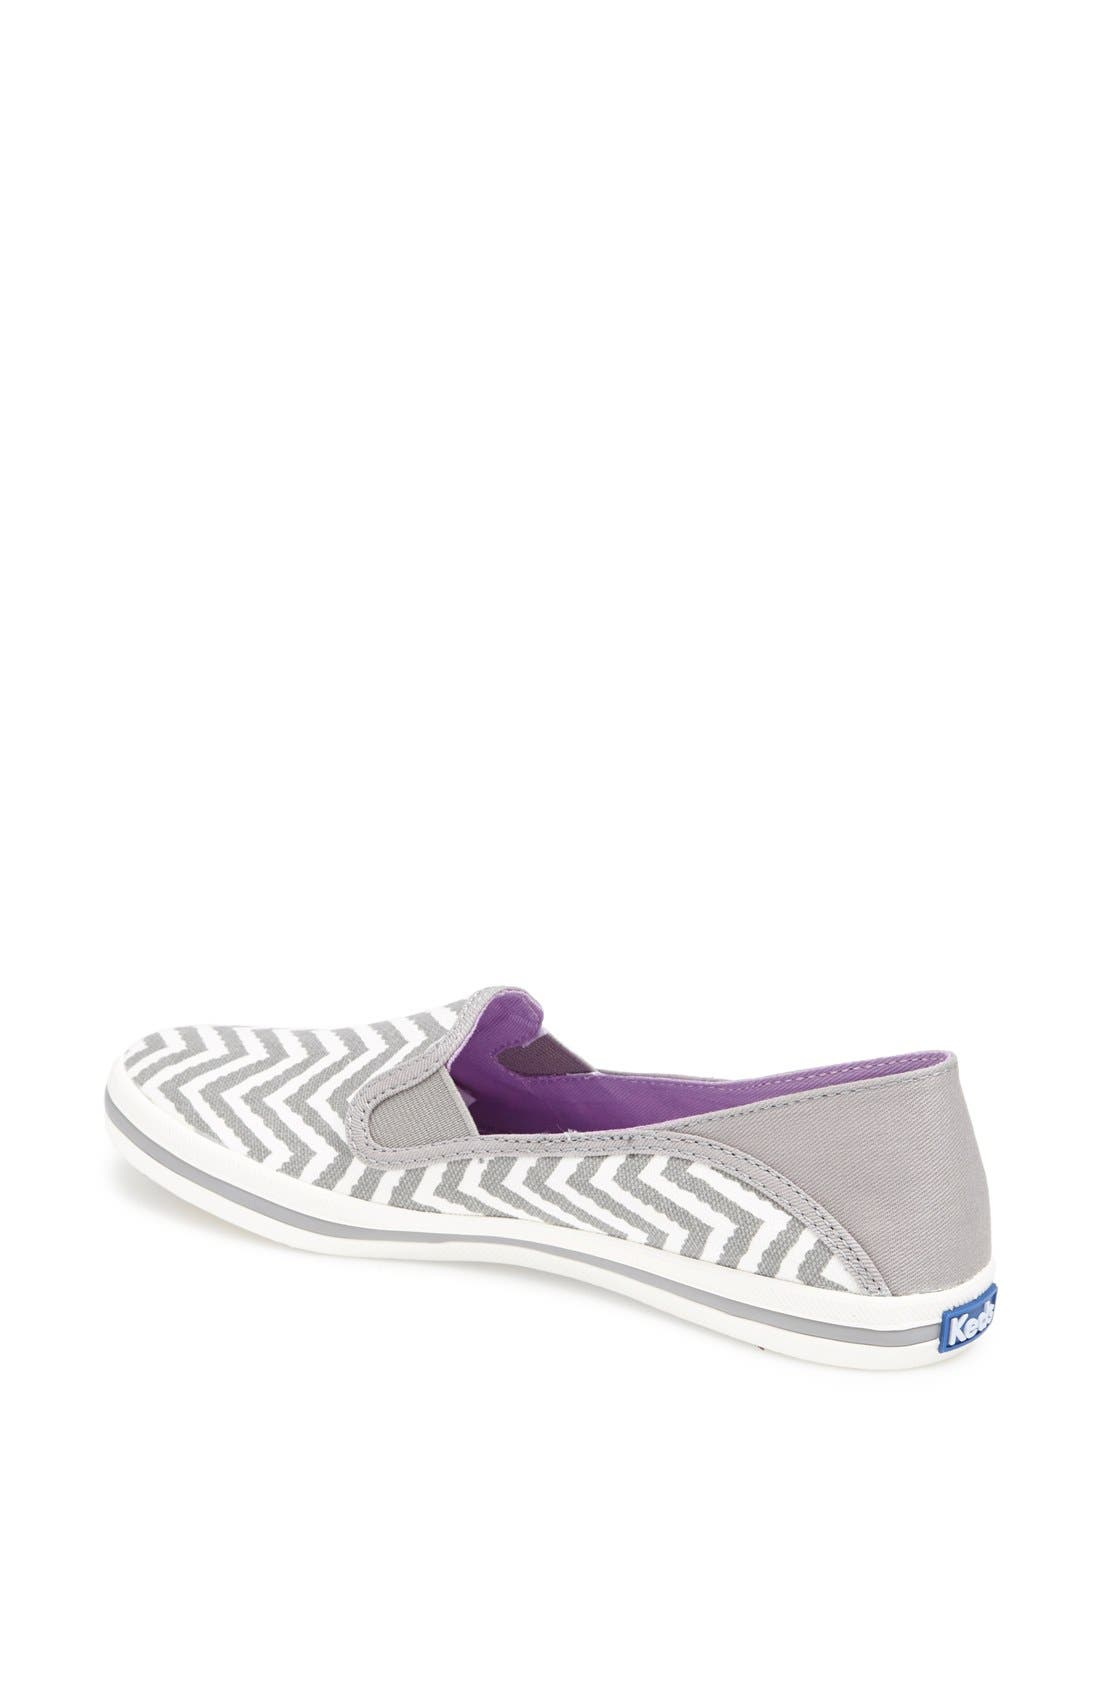 Alternate Image 2  - Keds® 'Crash Back - Zigzag' Canvas Slip-On Sneaker (Women)